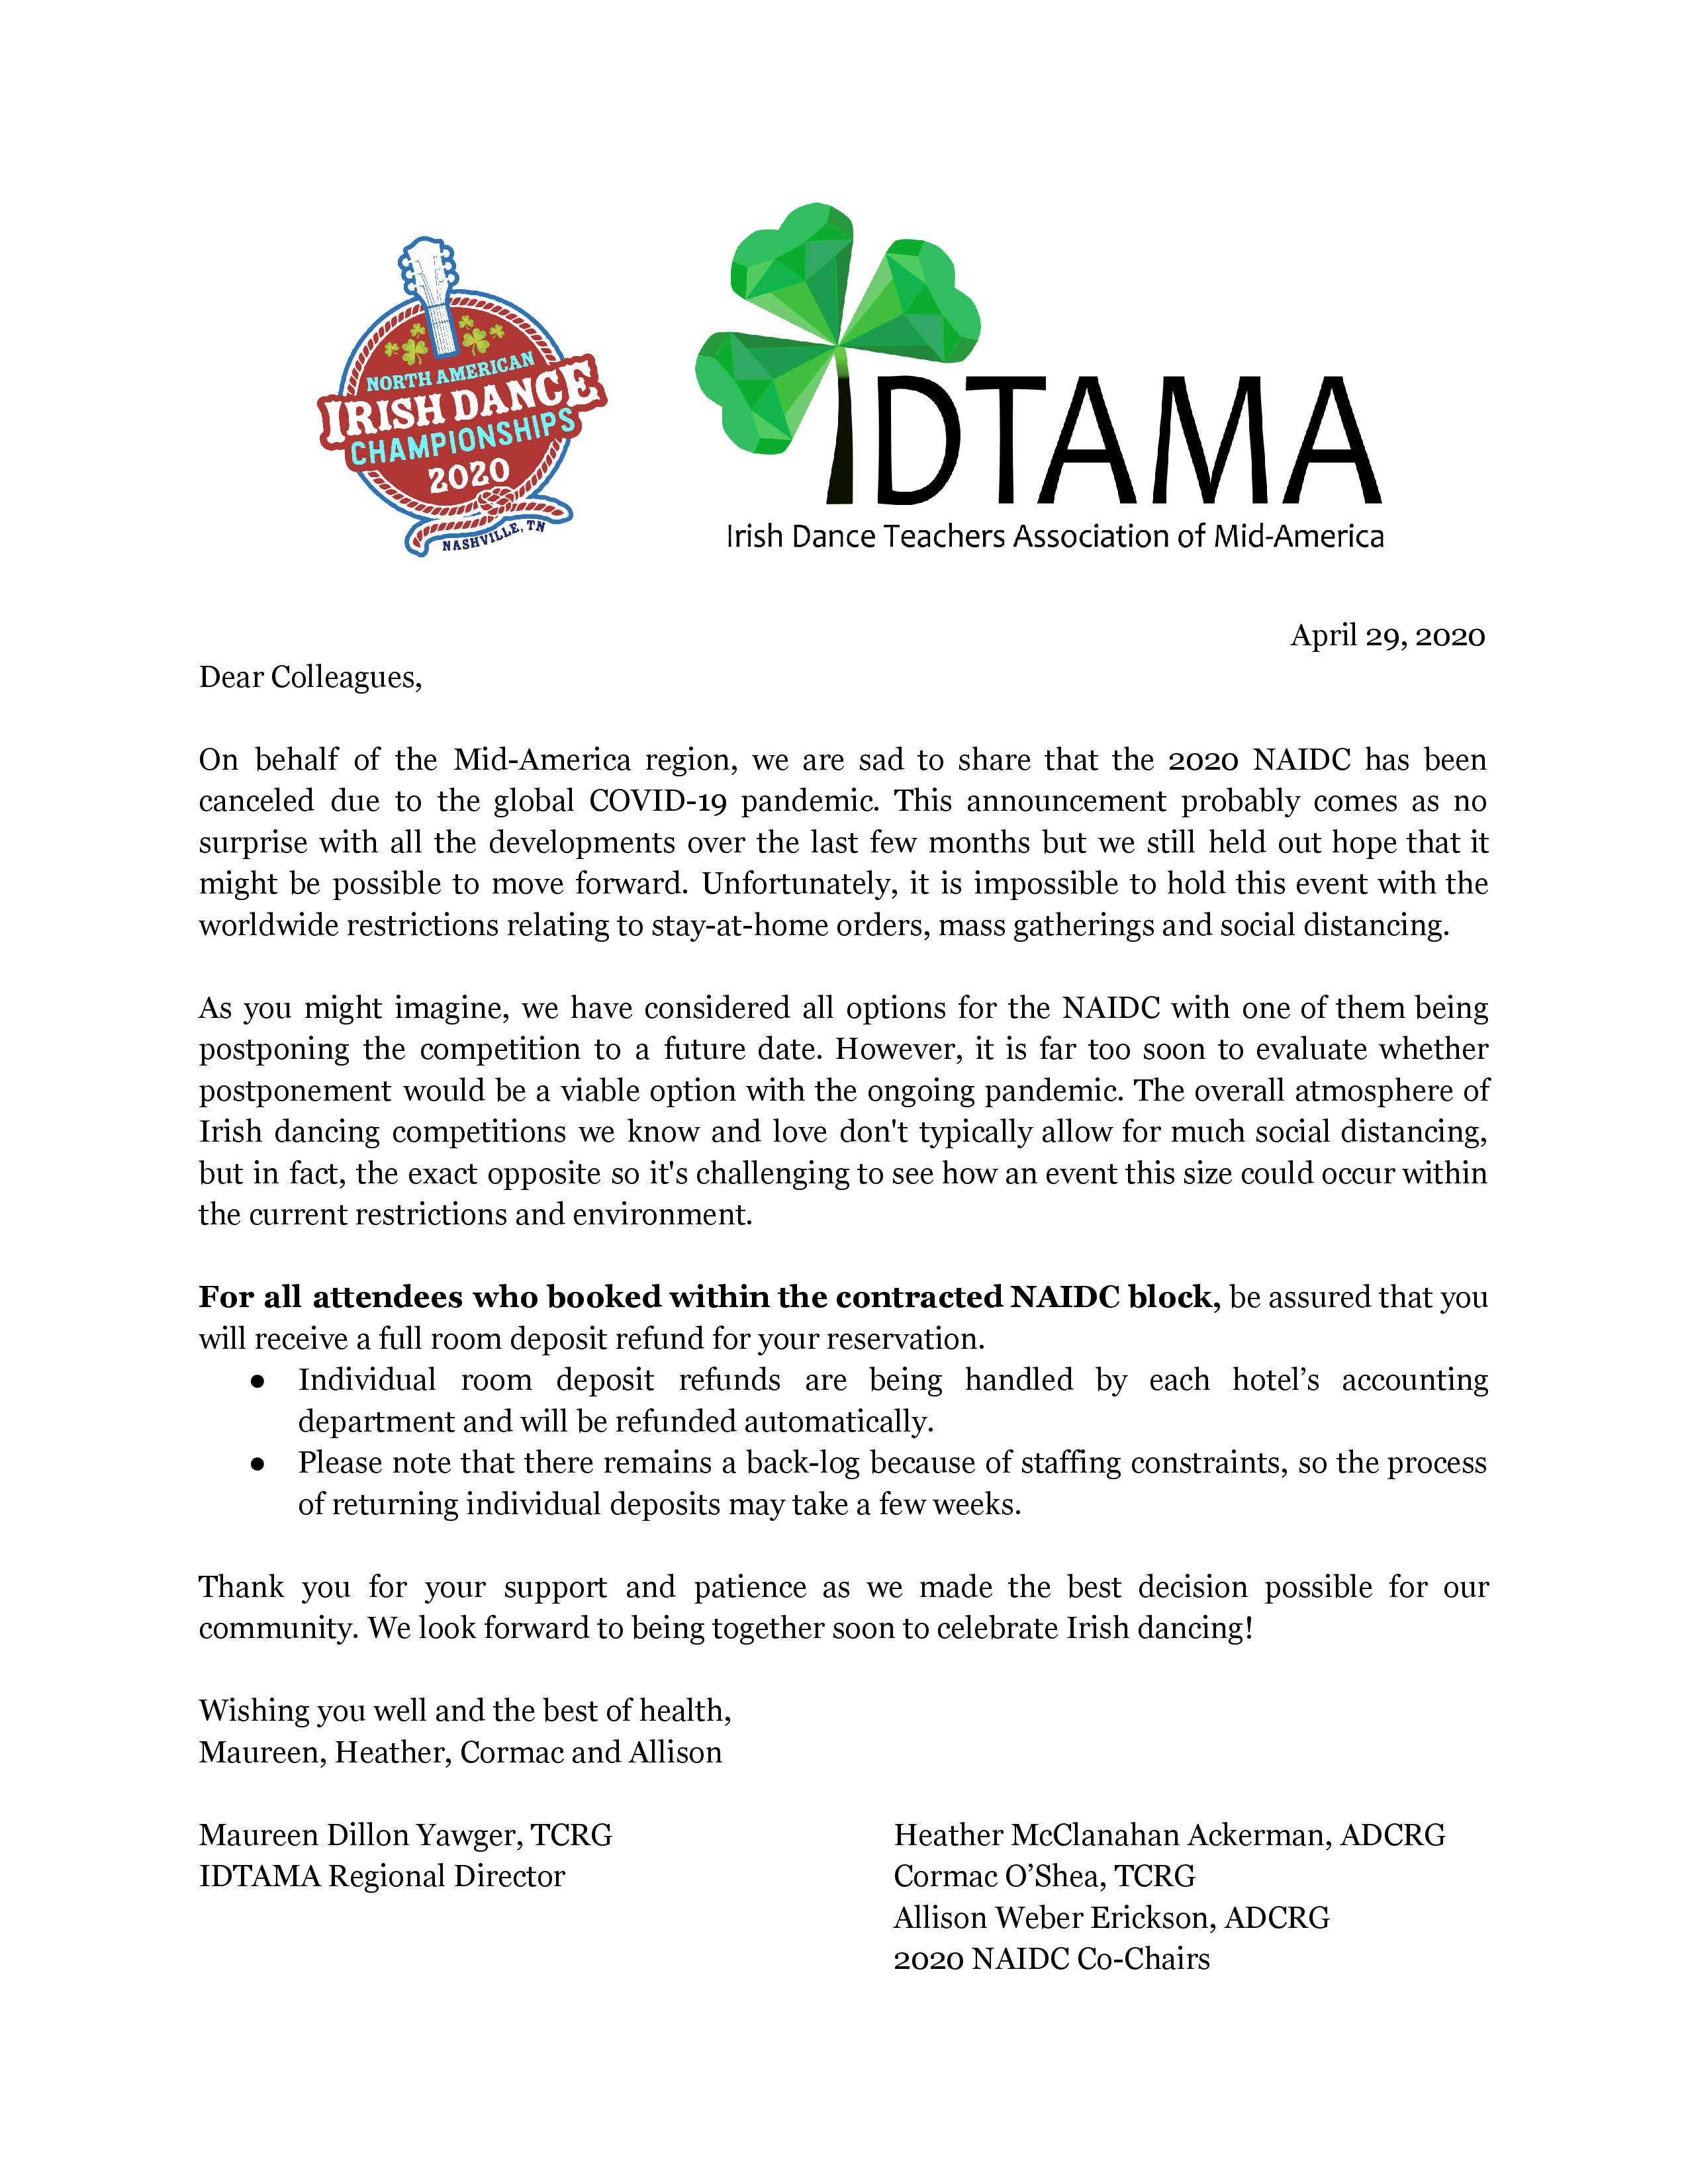 2020 NAIDC Worldwide Cancellation Letter